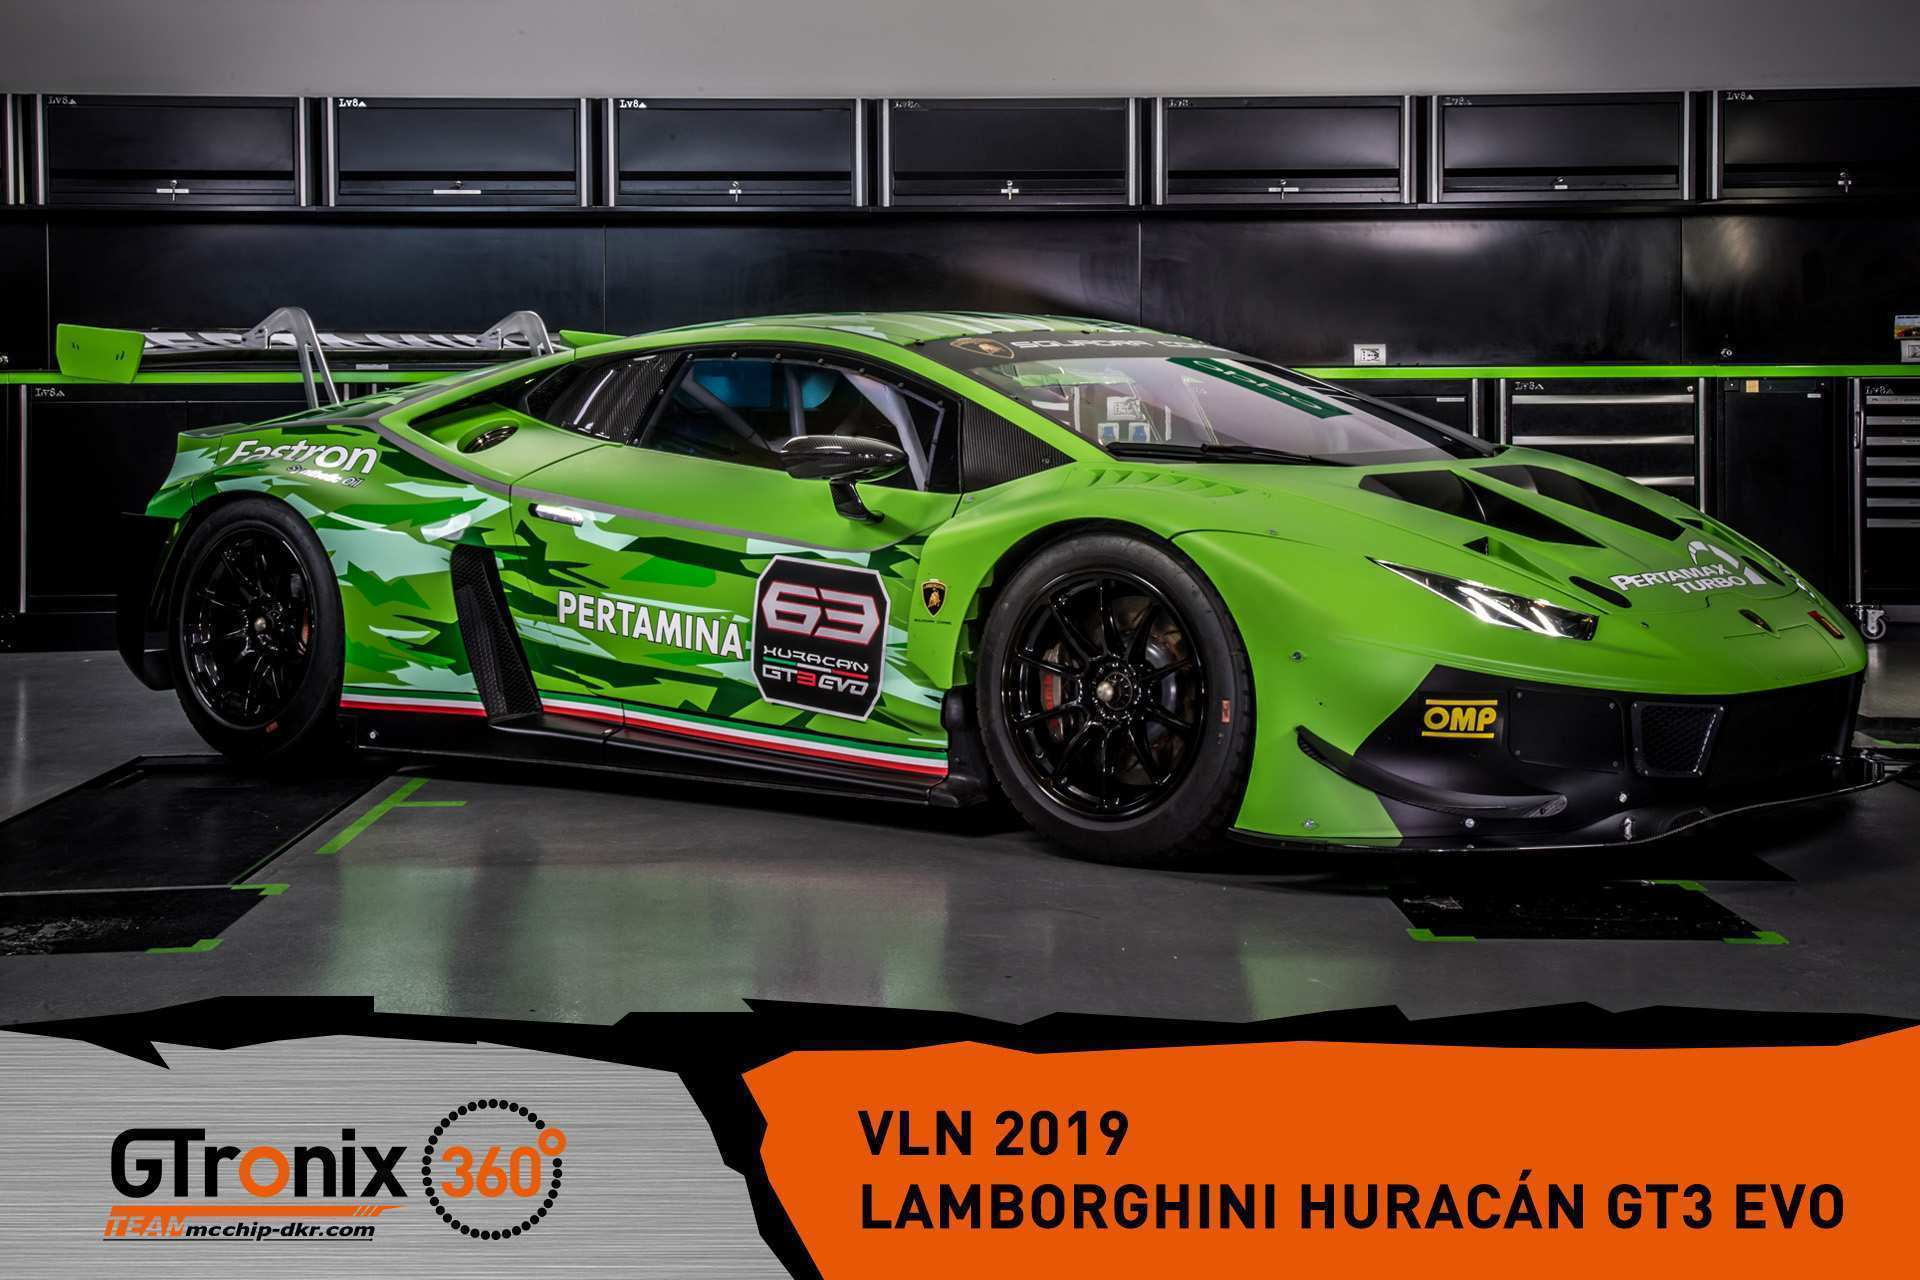 35 Best Review 2019 Lamborghini Huracan Gt3 Evo Interior with 2019 Lamborghini Huracan Gt3 Evo